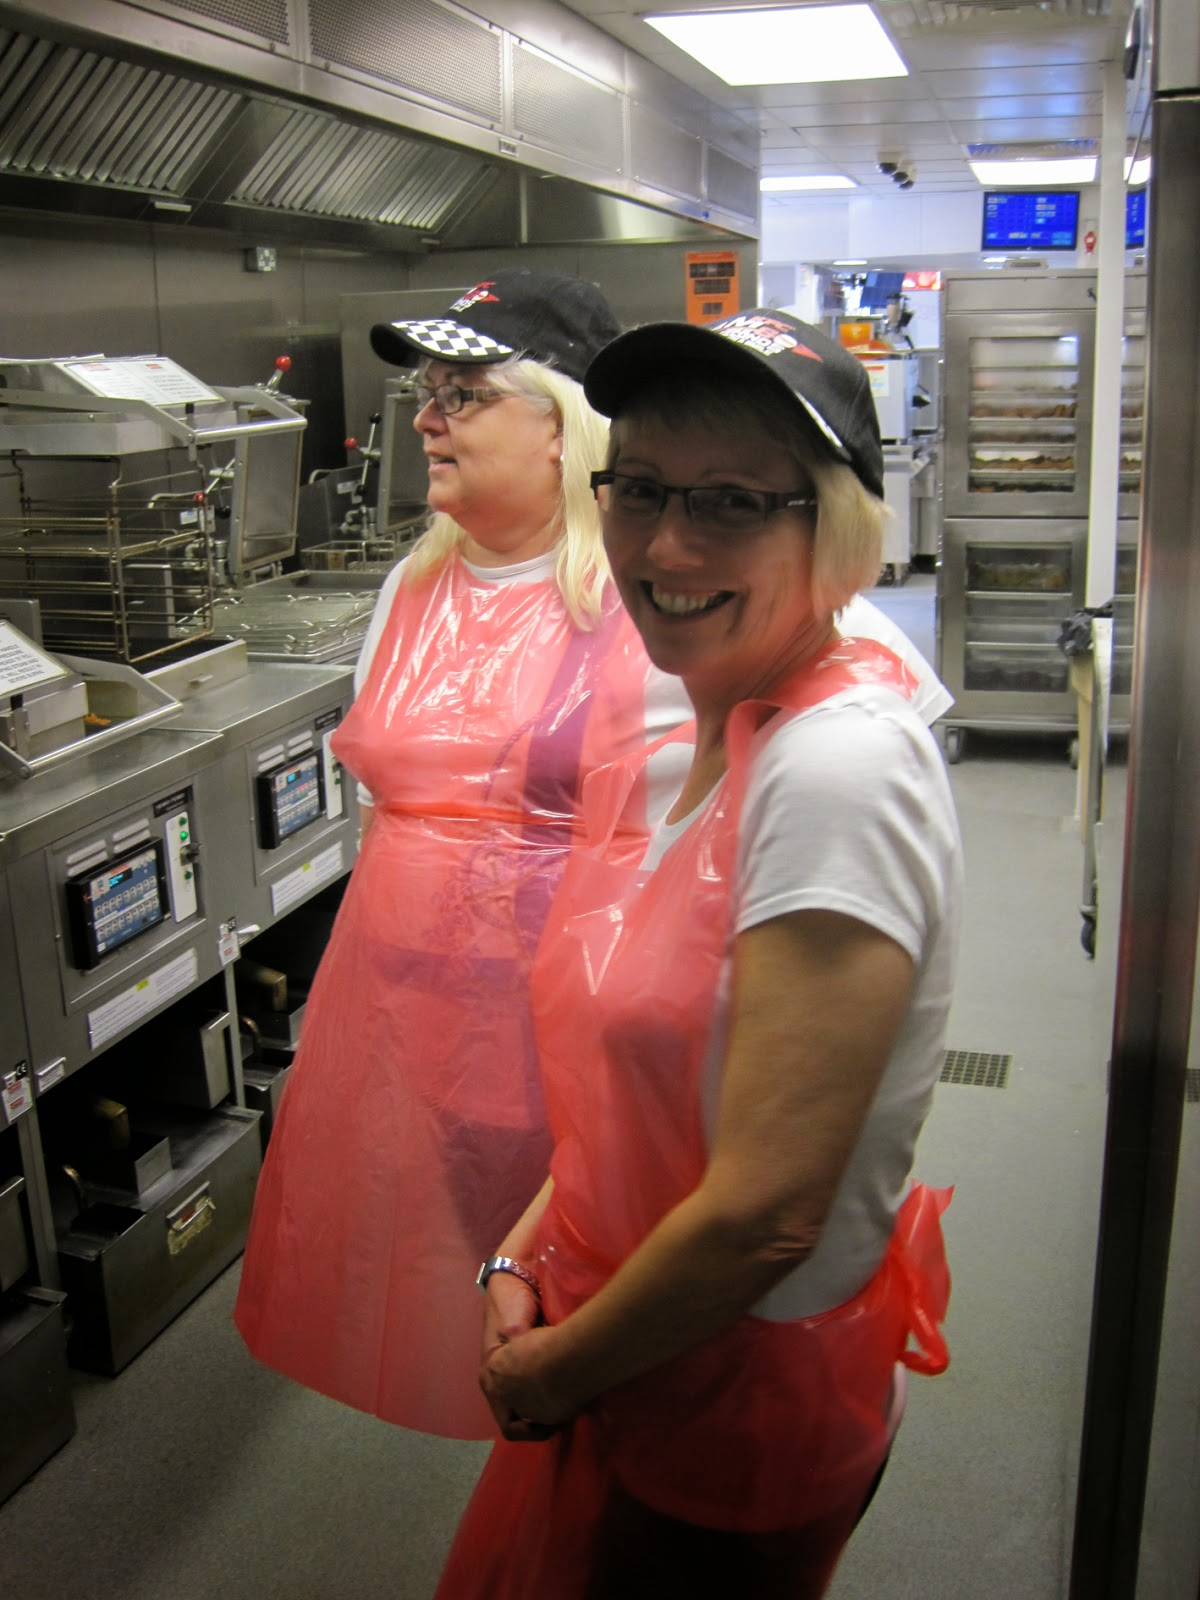 Behind the Scenes at KFC with The BBC